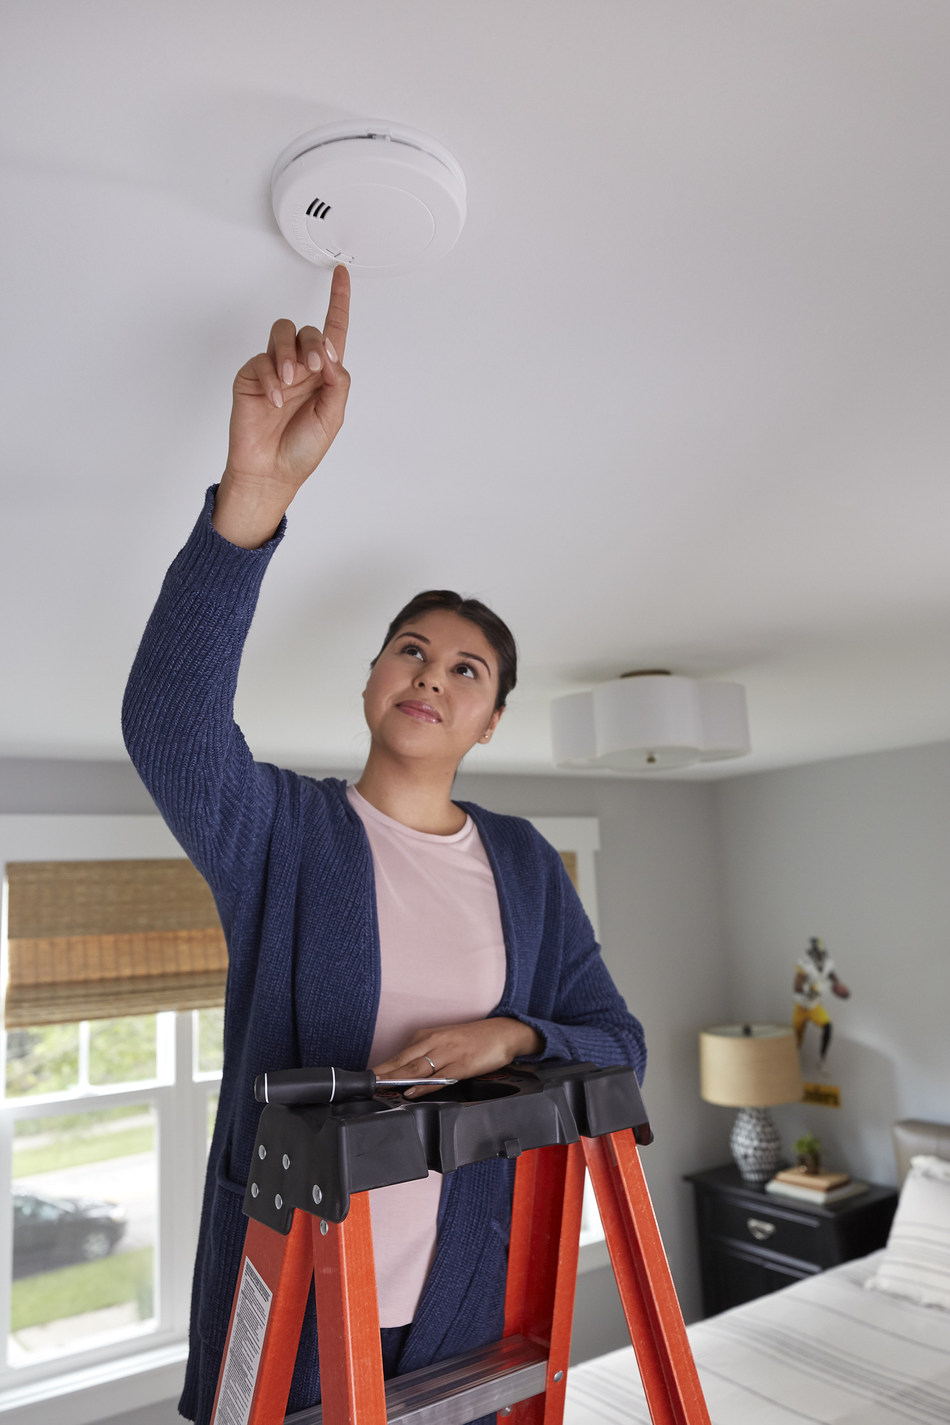 According to the NFPA, three out of four fires occur in the home, the very place that most people feel the safest. However, more than 60% of consumers do not test their smoke and CO alarms monthly, according to a new survey by First Alert.